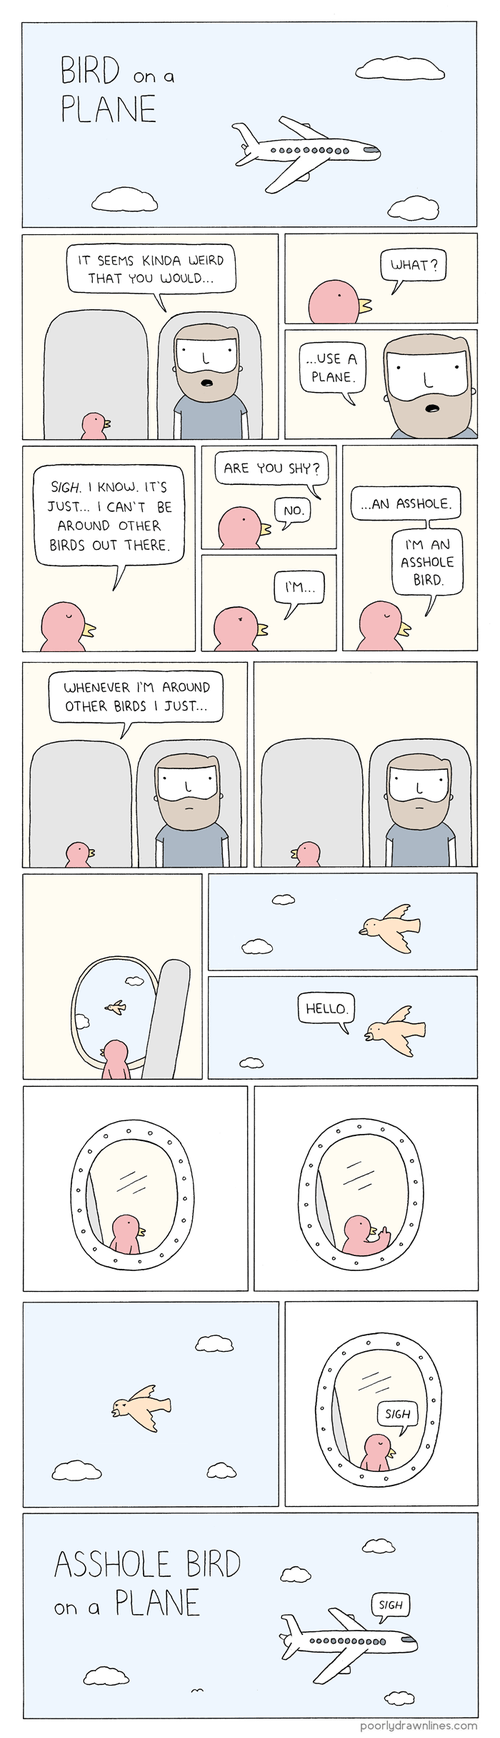 birds planes web comics - 7980492800